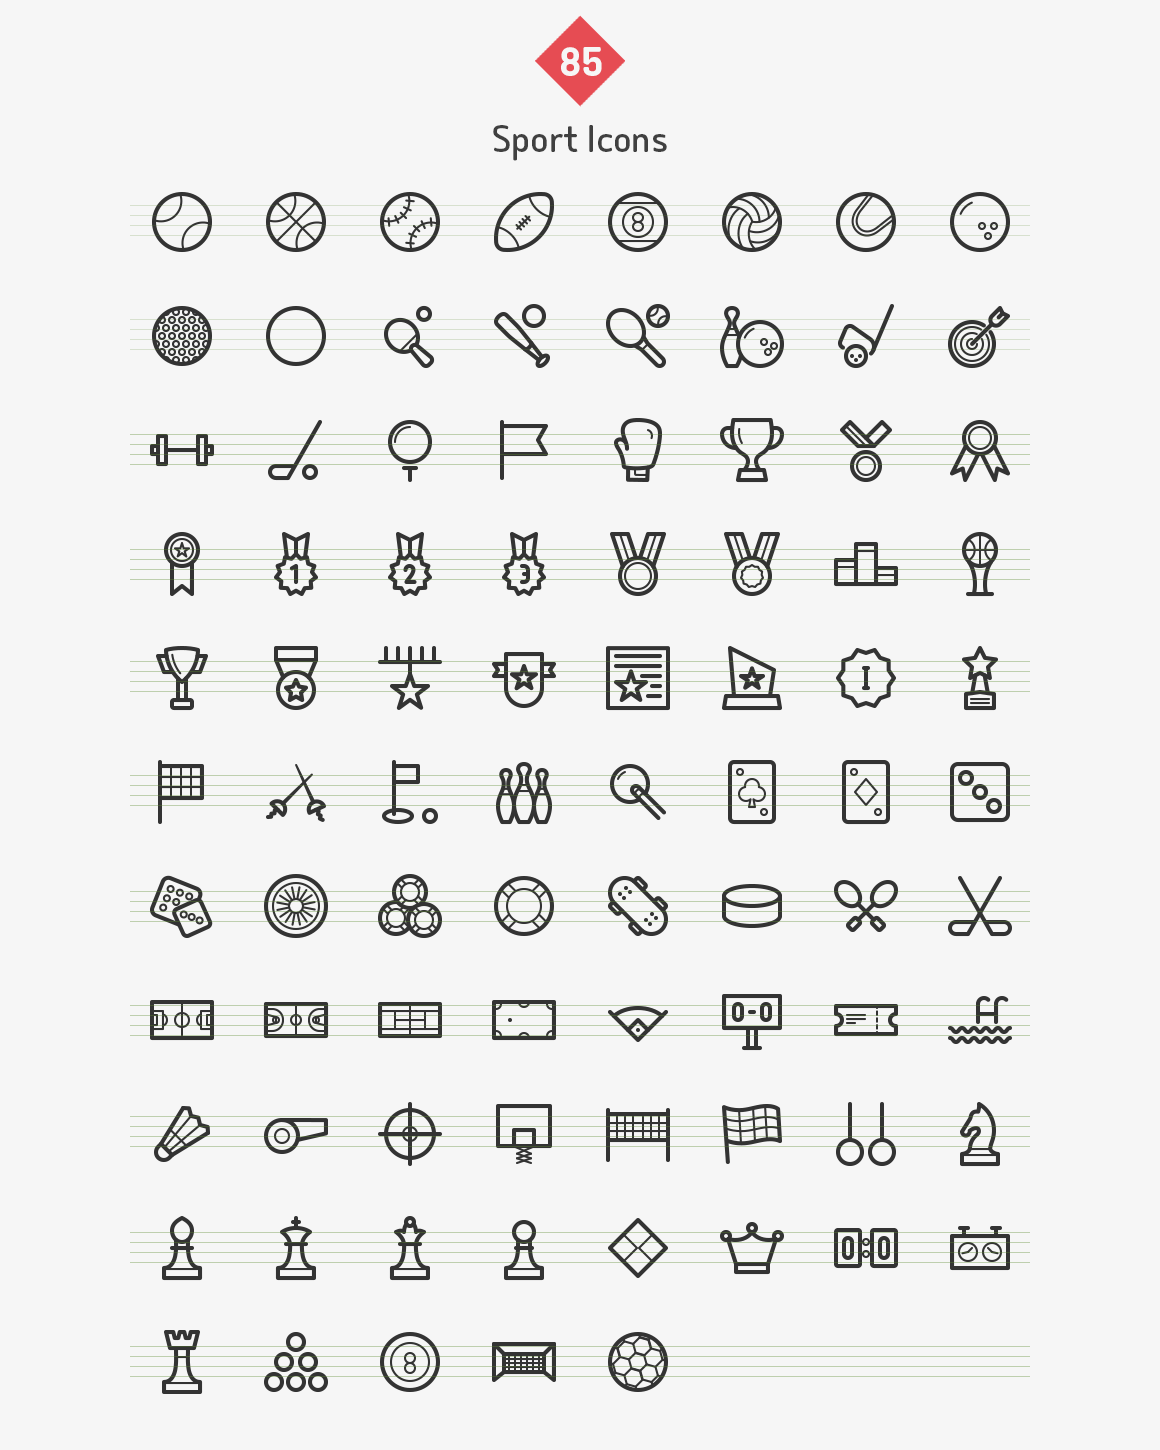 85-sport-line-icons-sharpicons-list